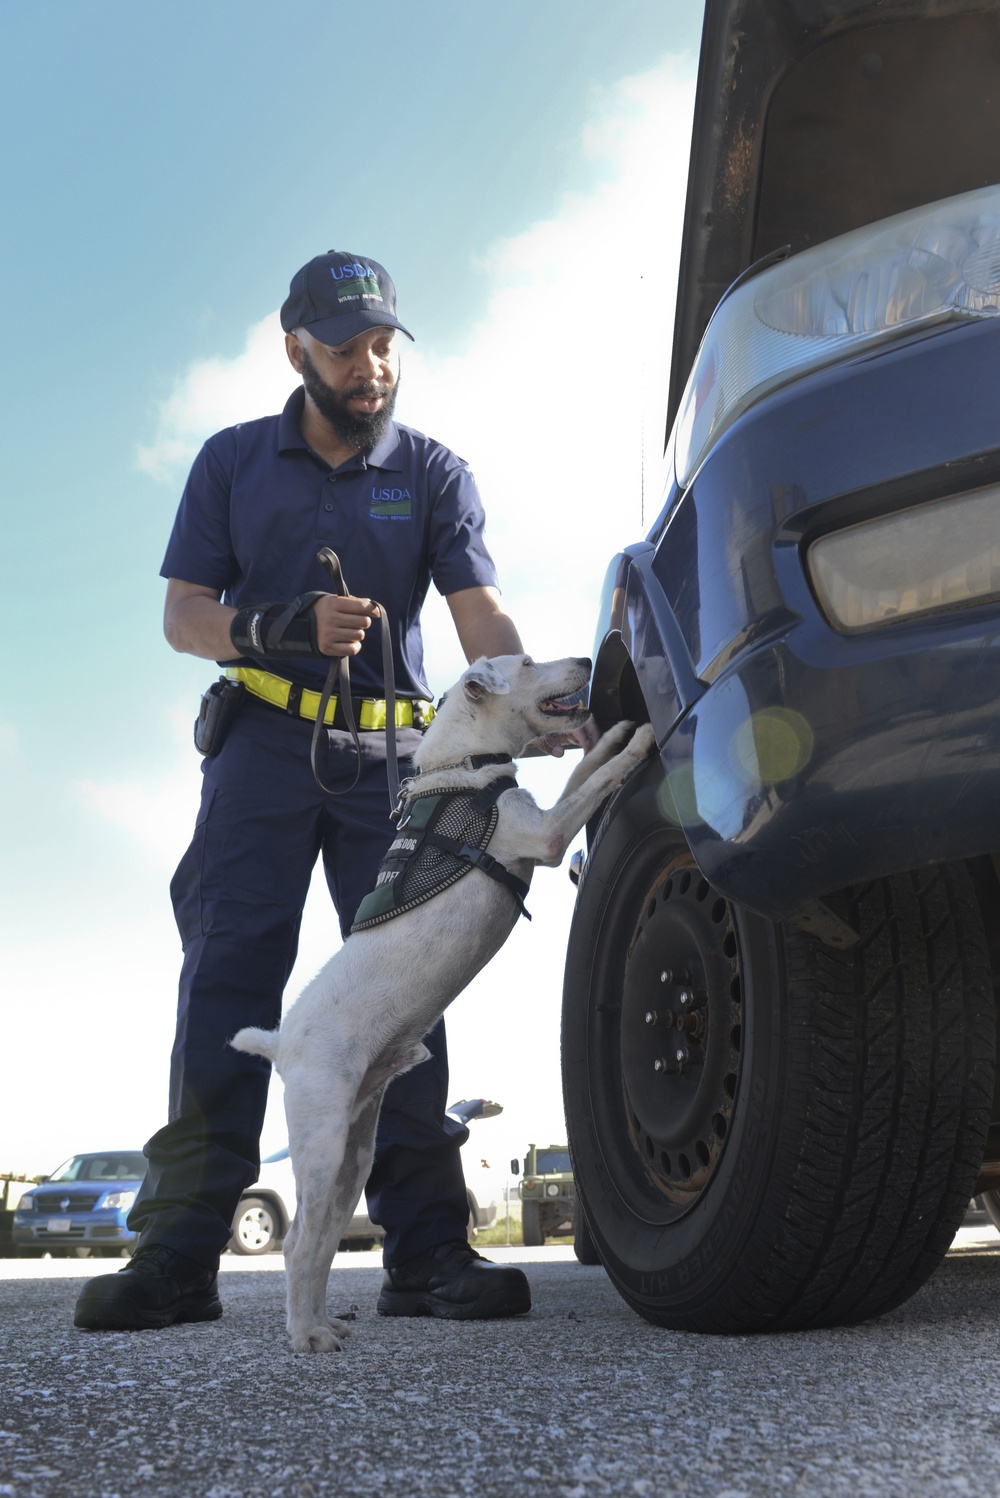 USDA dogs sniff out snakes